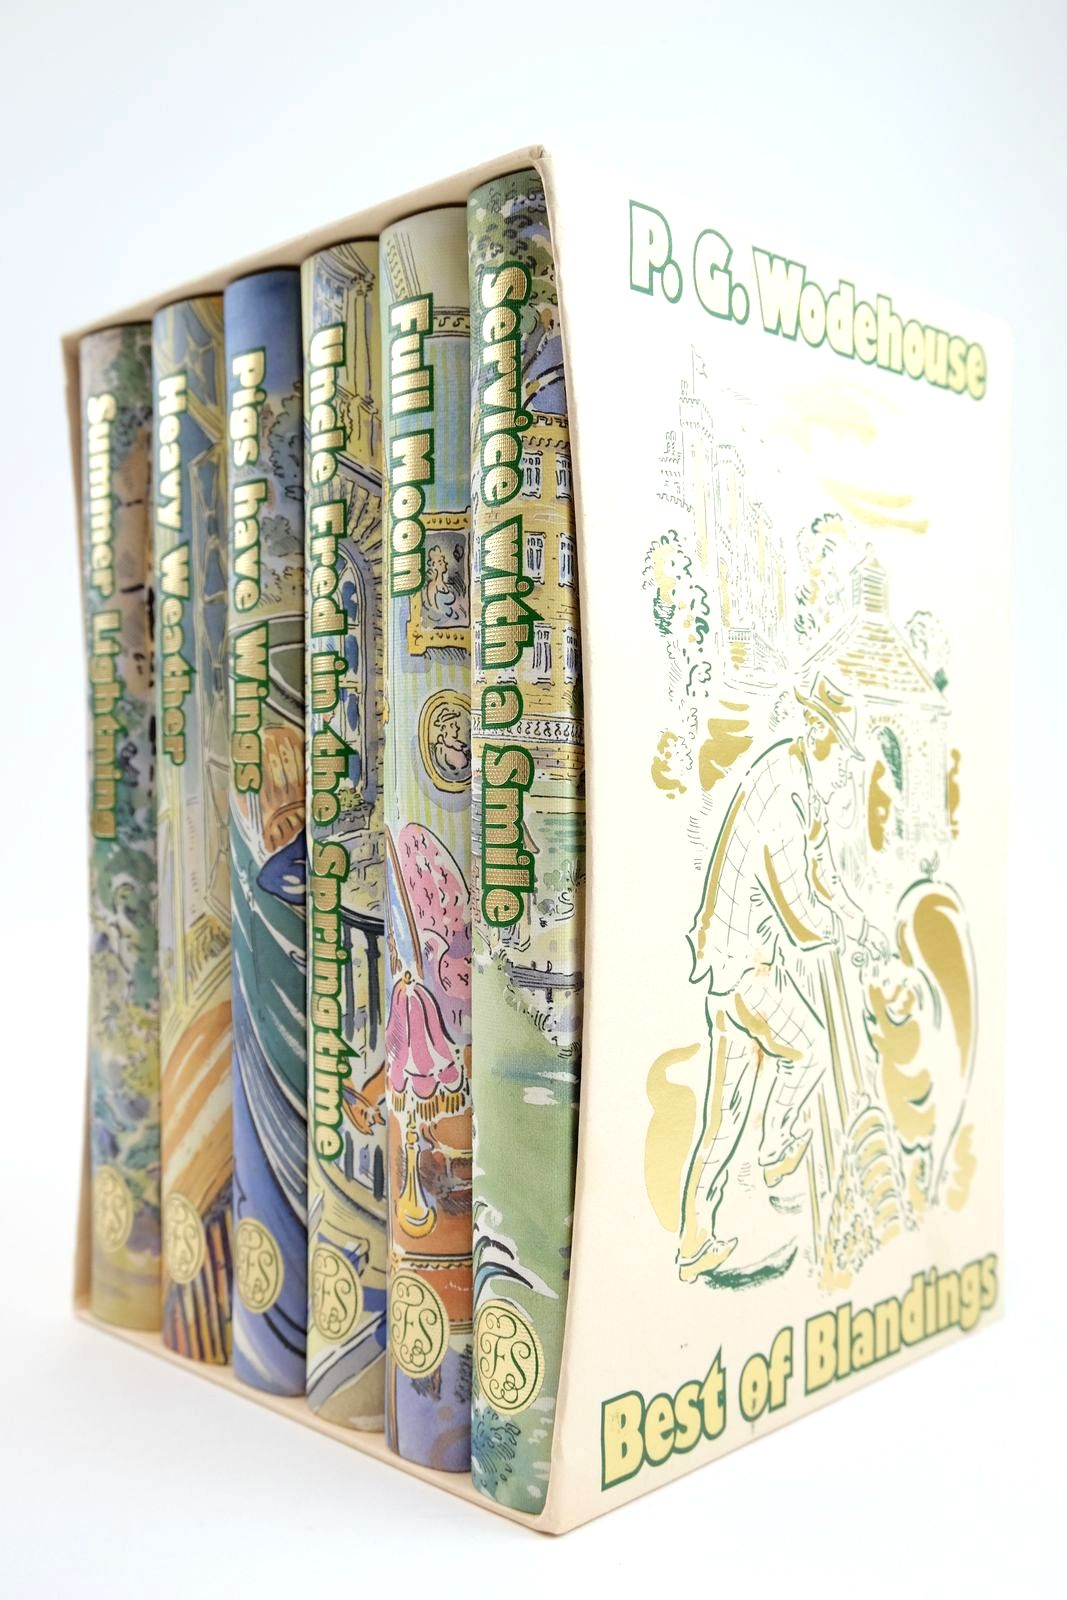 Photo of BEST OF BLANDINGS (6 VOLUMES) written by Wodehouse, P.G. illustrated by Cox, Paul published by Folio Society (STOCK CODE: 2133591)  for sale by Stella & Rose's Books